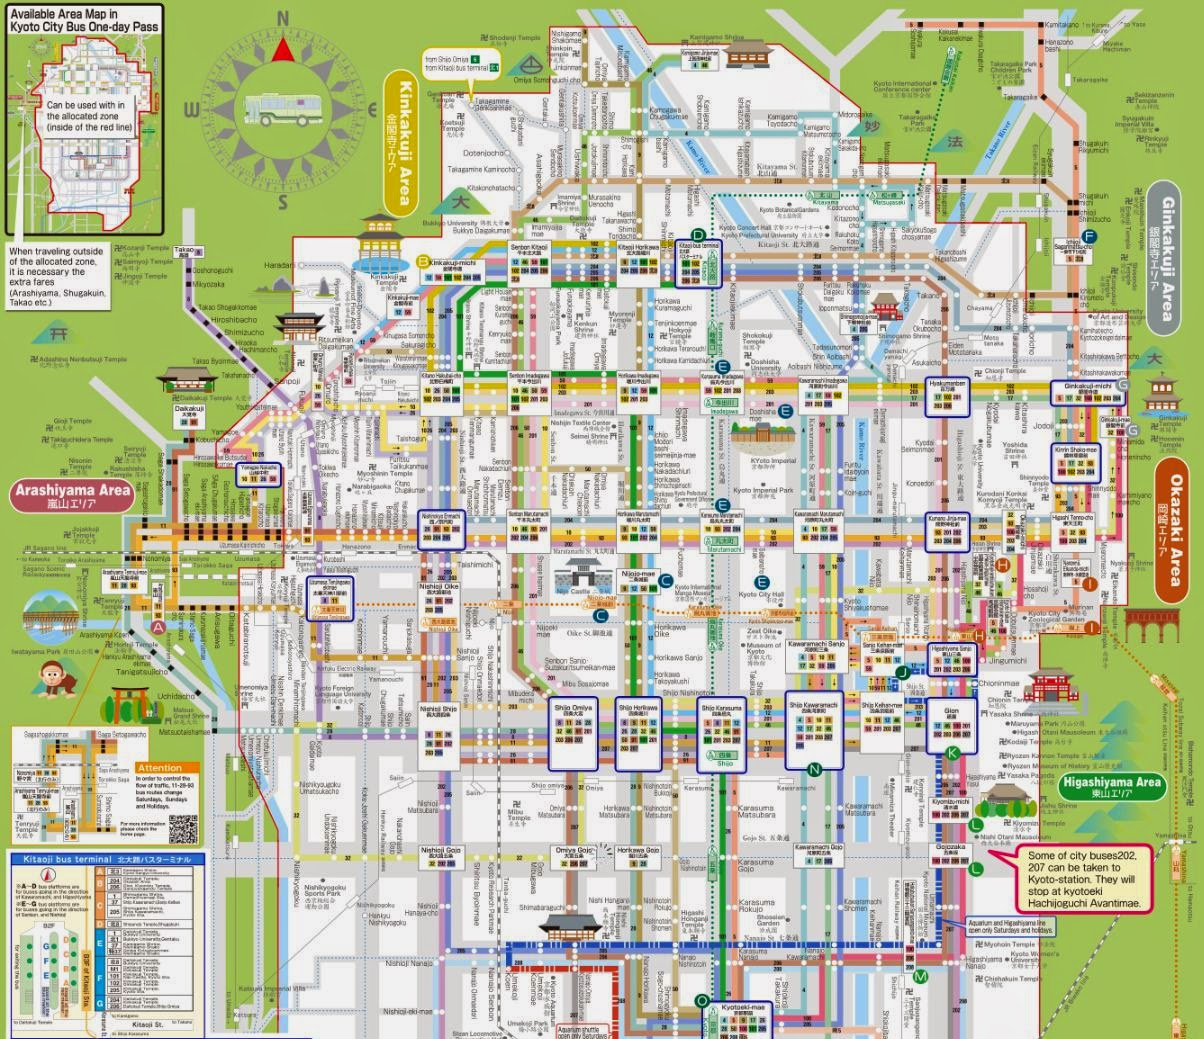 Kyoto Bus Map 2014